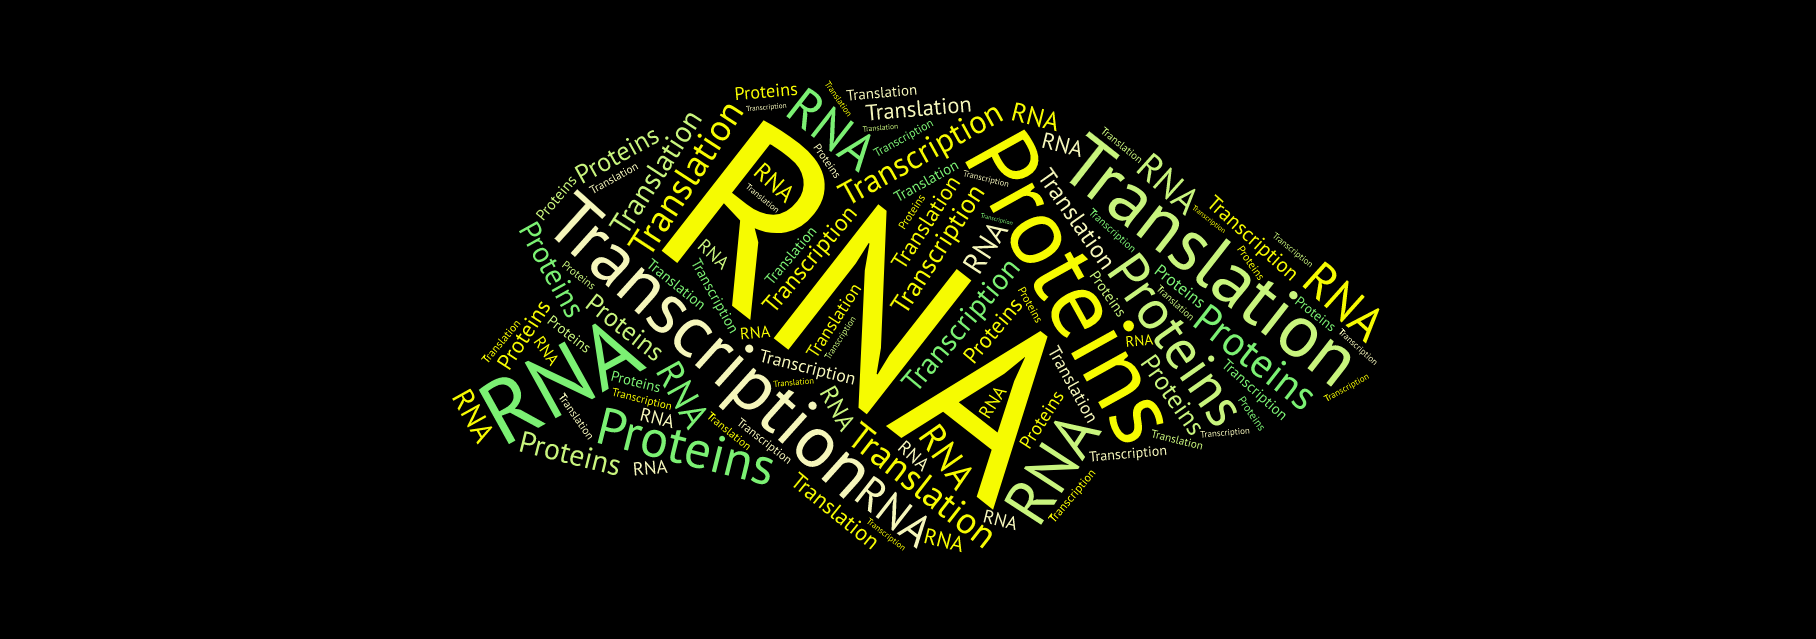 Starting off in Bioinformatics — RNA Transcription and